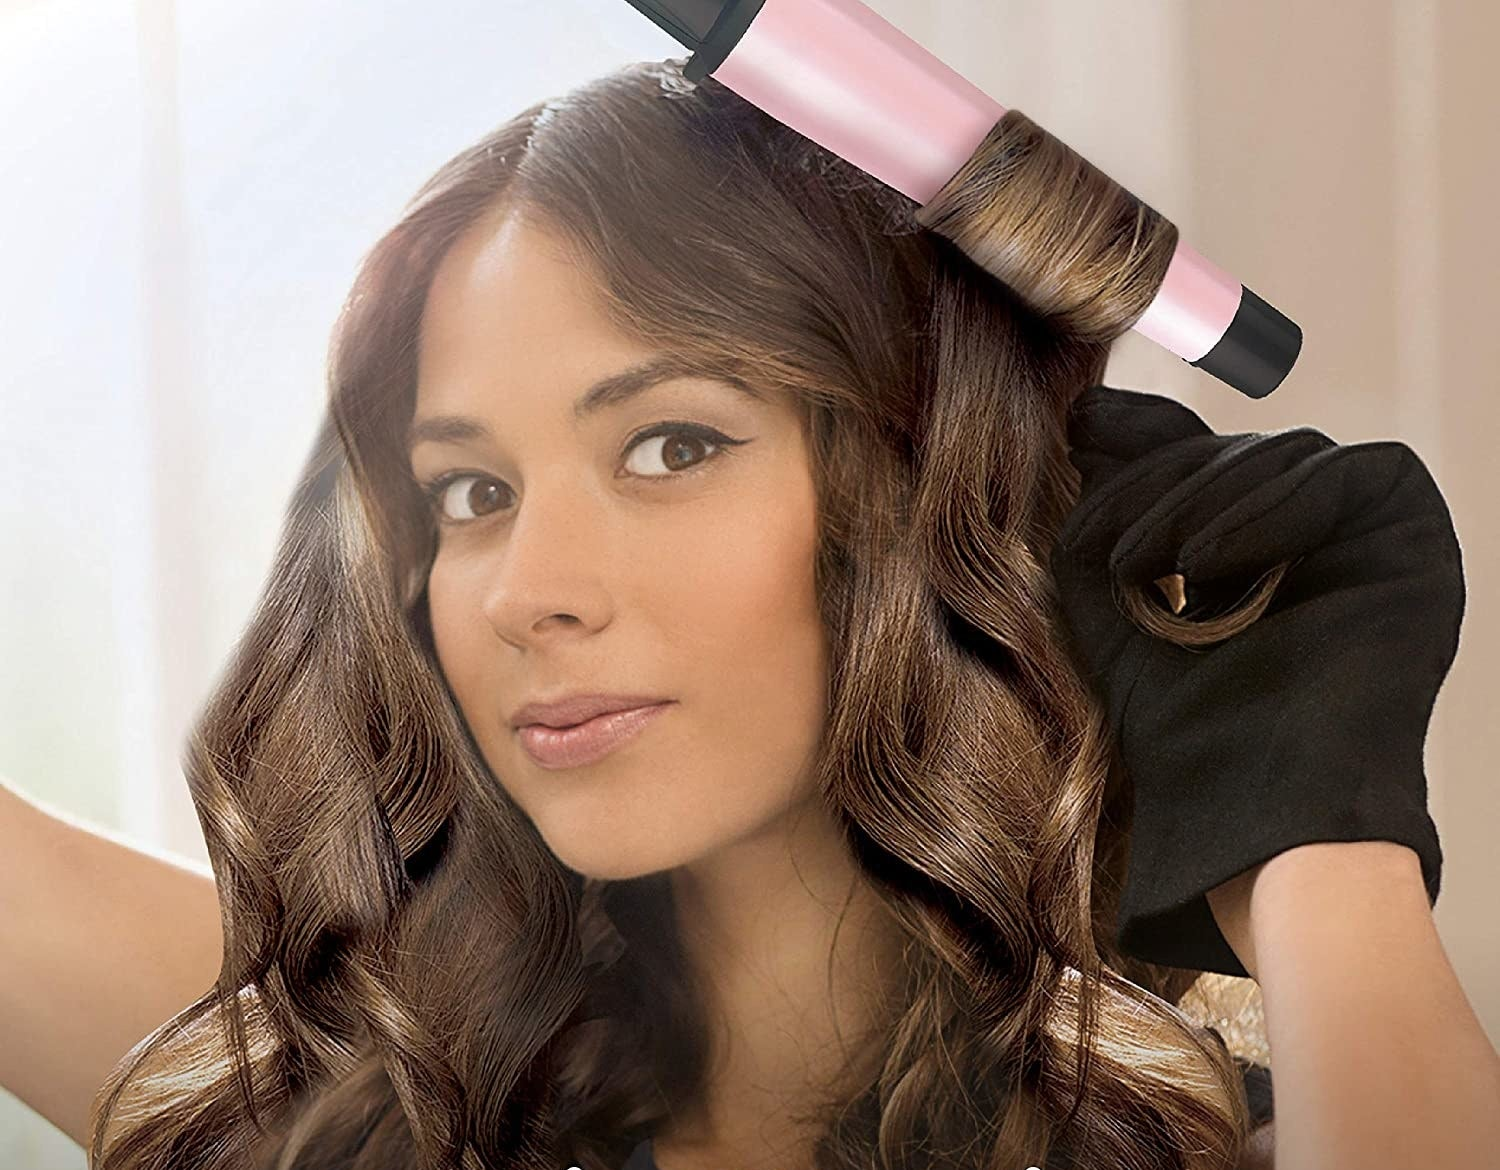 A model using the curling wand to create loose curls in her hair